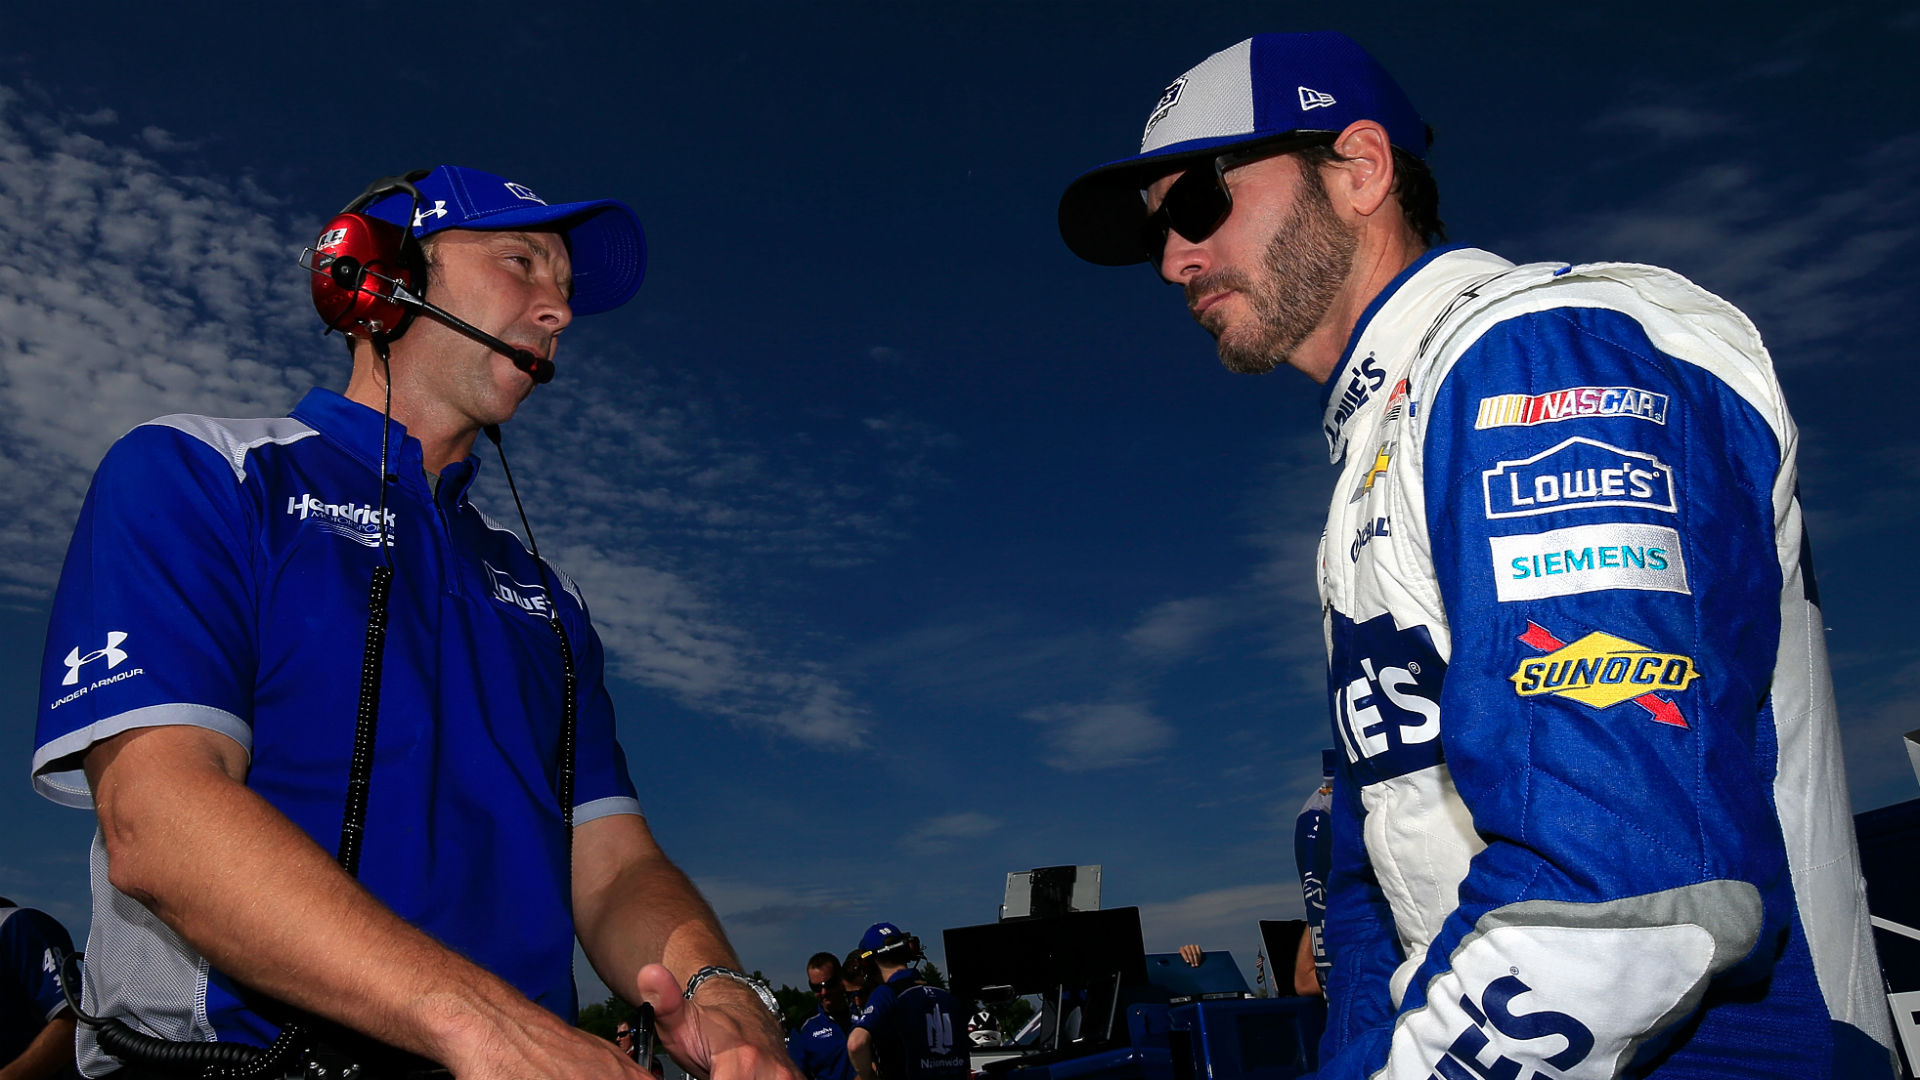 NASCAR crew chief Knaus missing race notes after theft